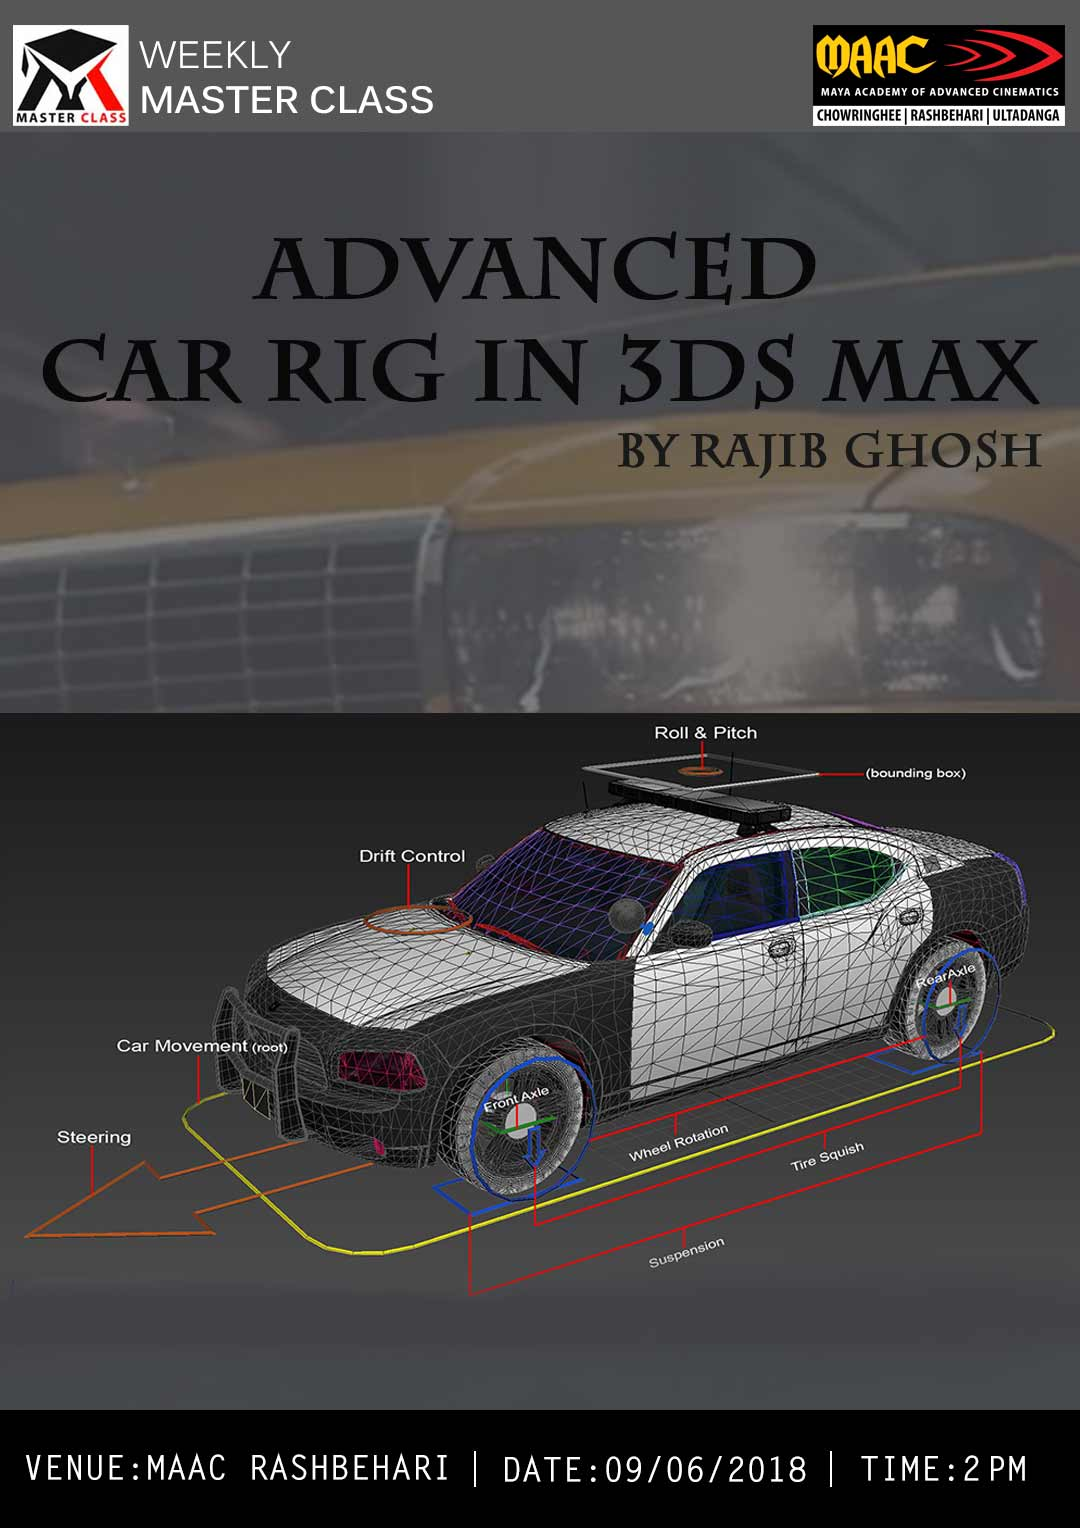 Weekly Master Class on Advanced Car Rig in 3DS Max